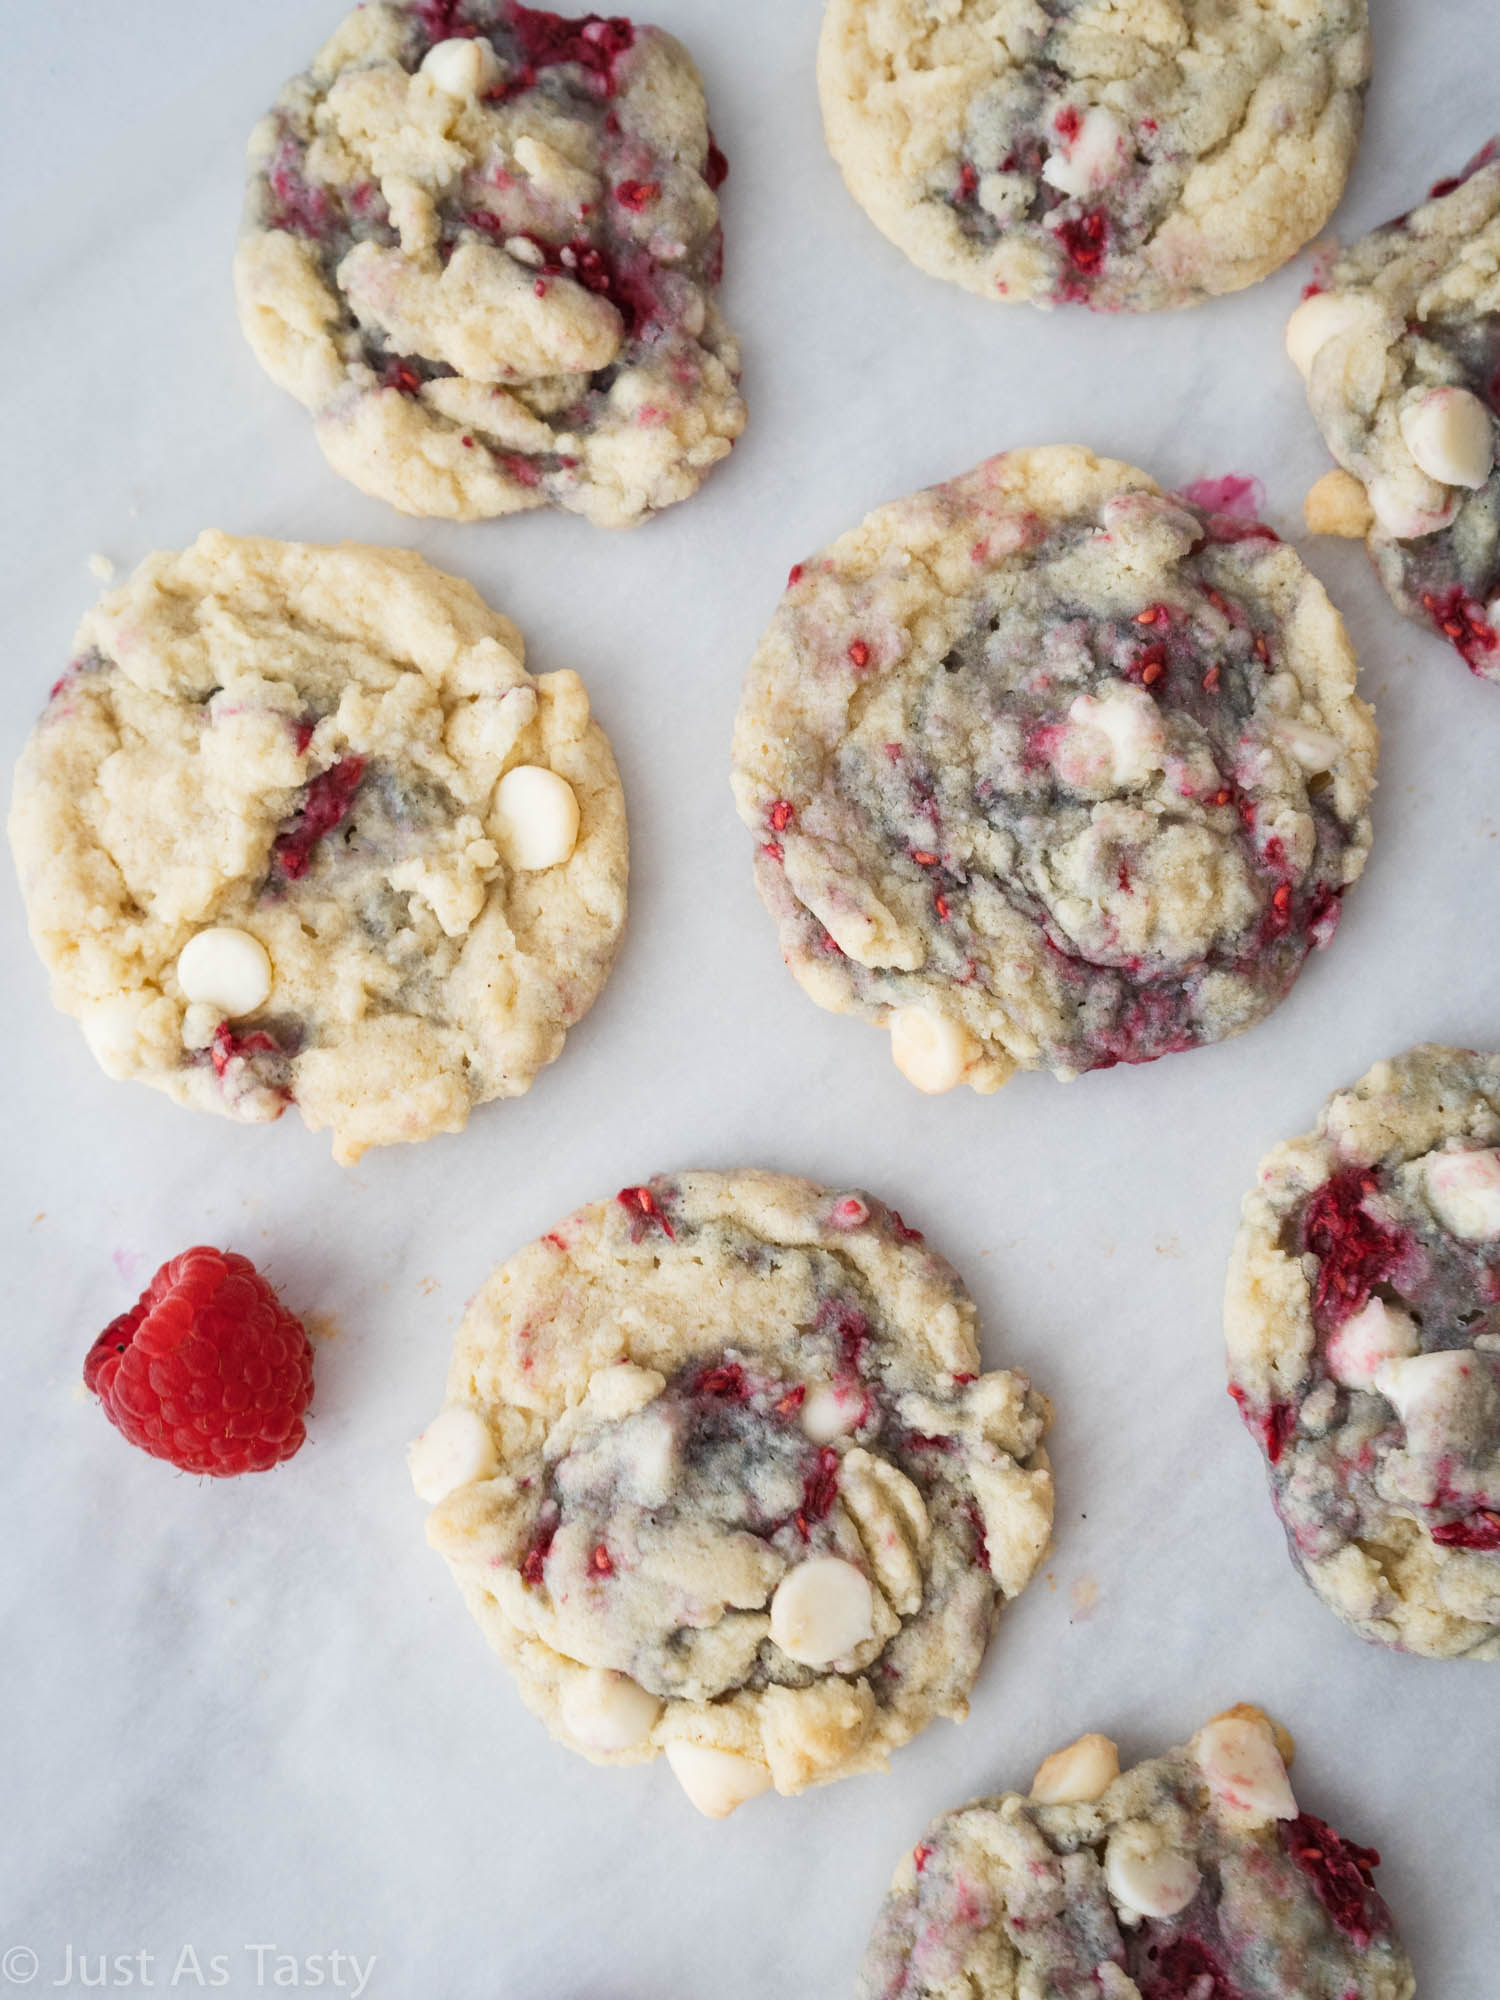 White chocolate raspberries on white parchment paper.